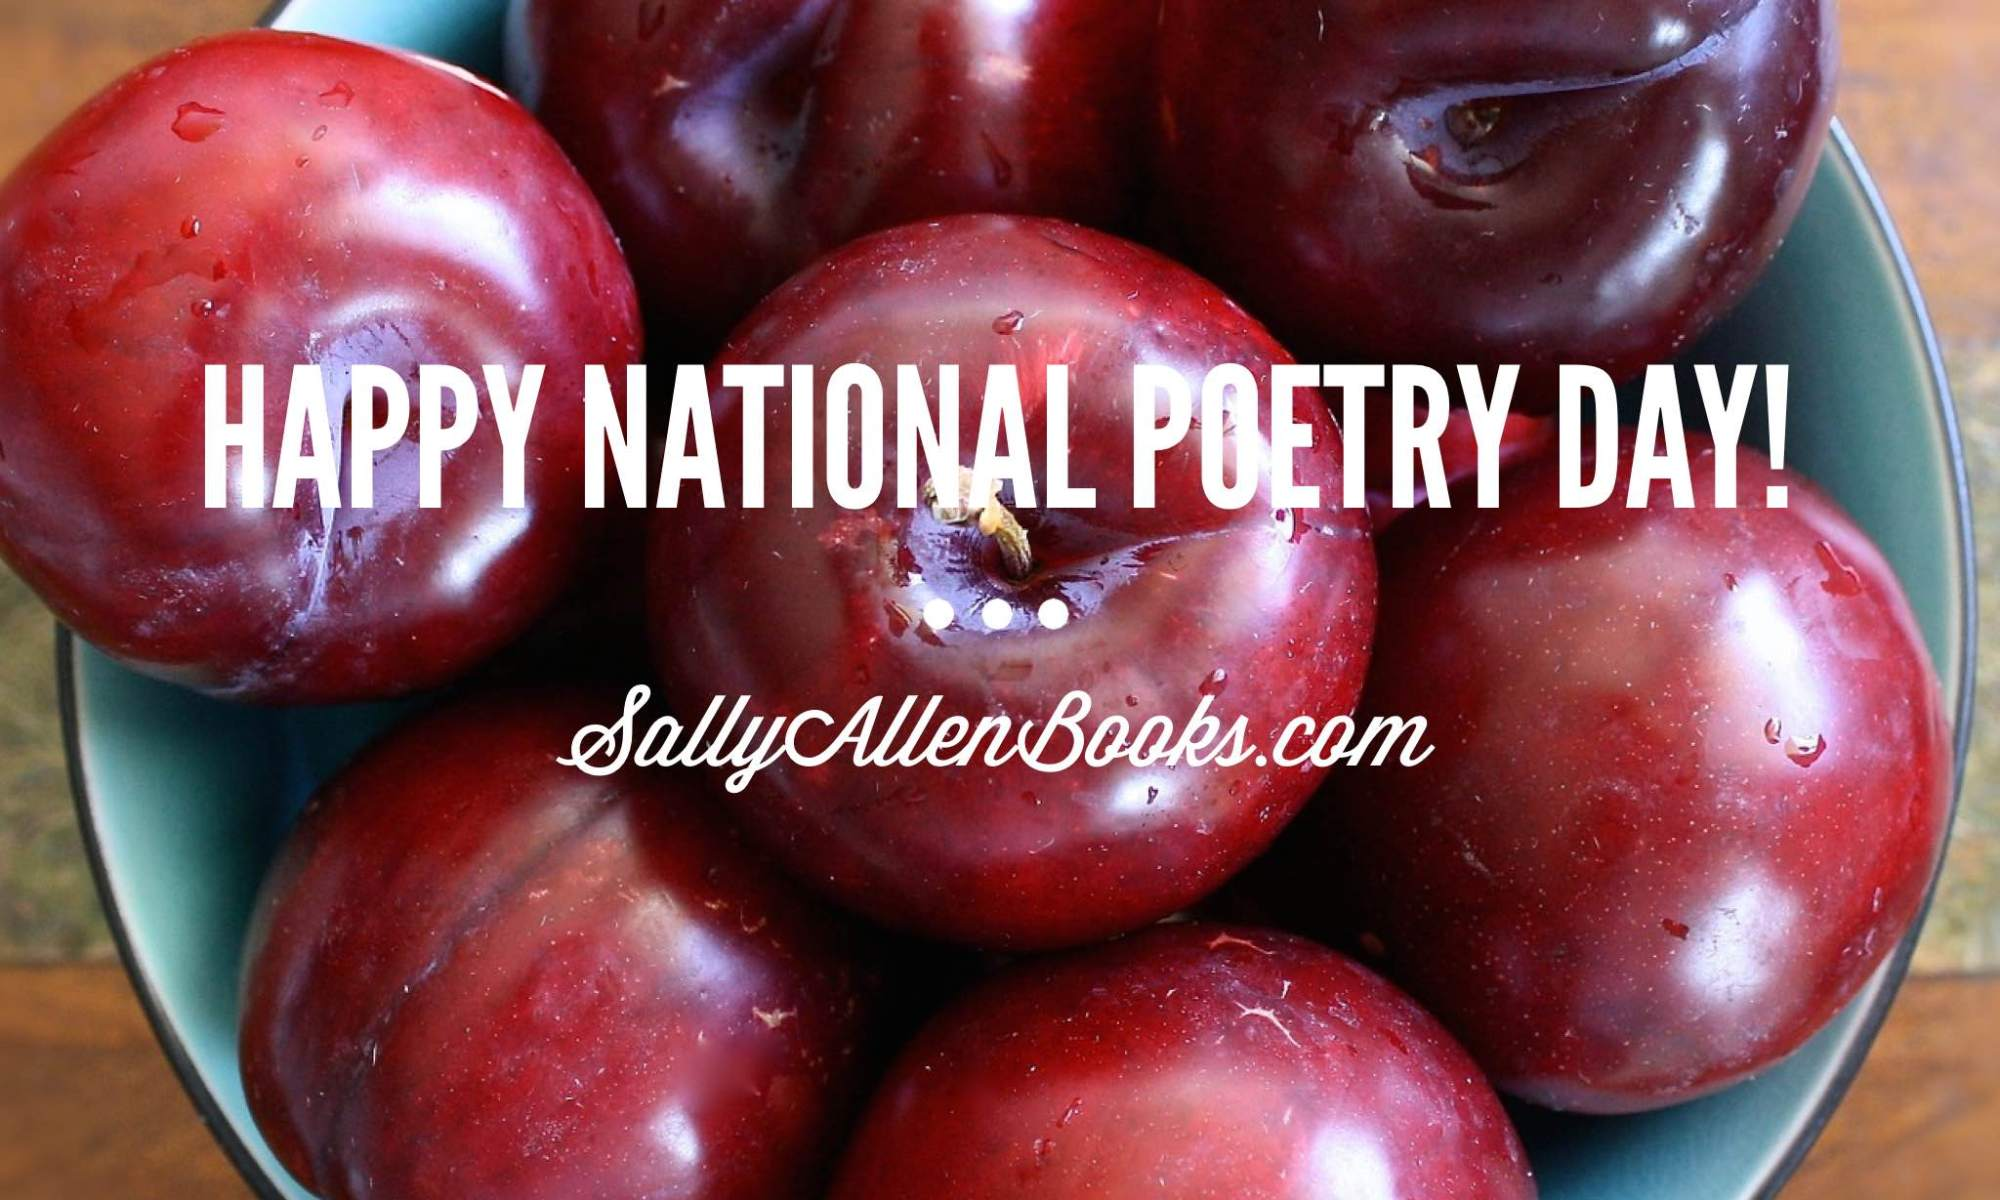 Happy National Poetry Day! What are some of your favorite poems?